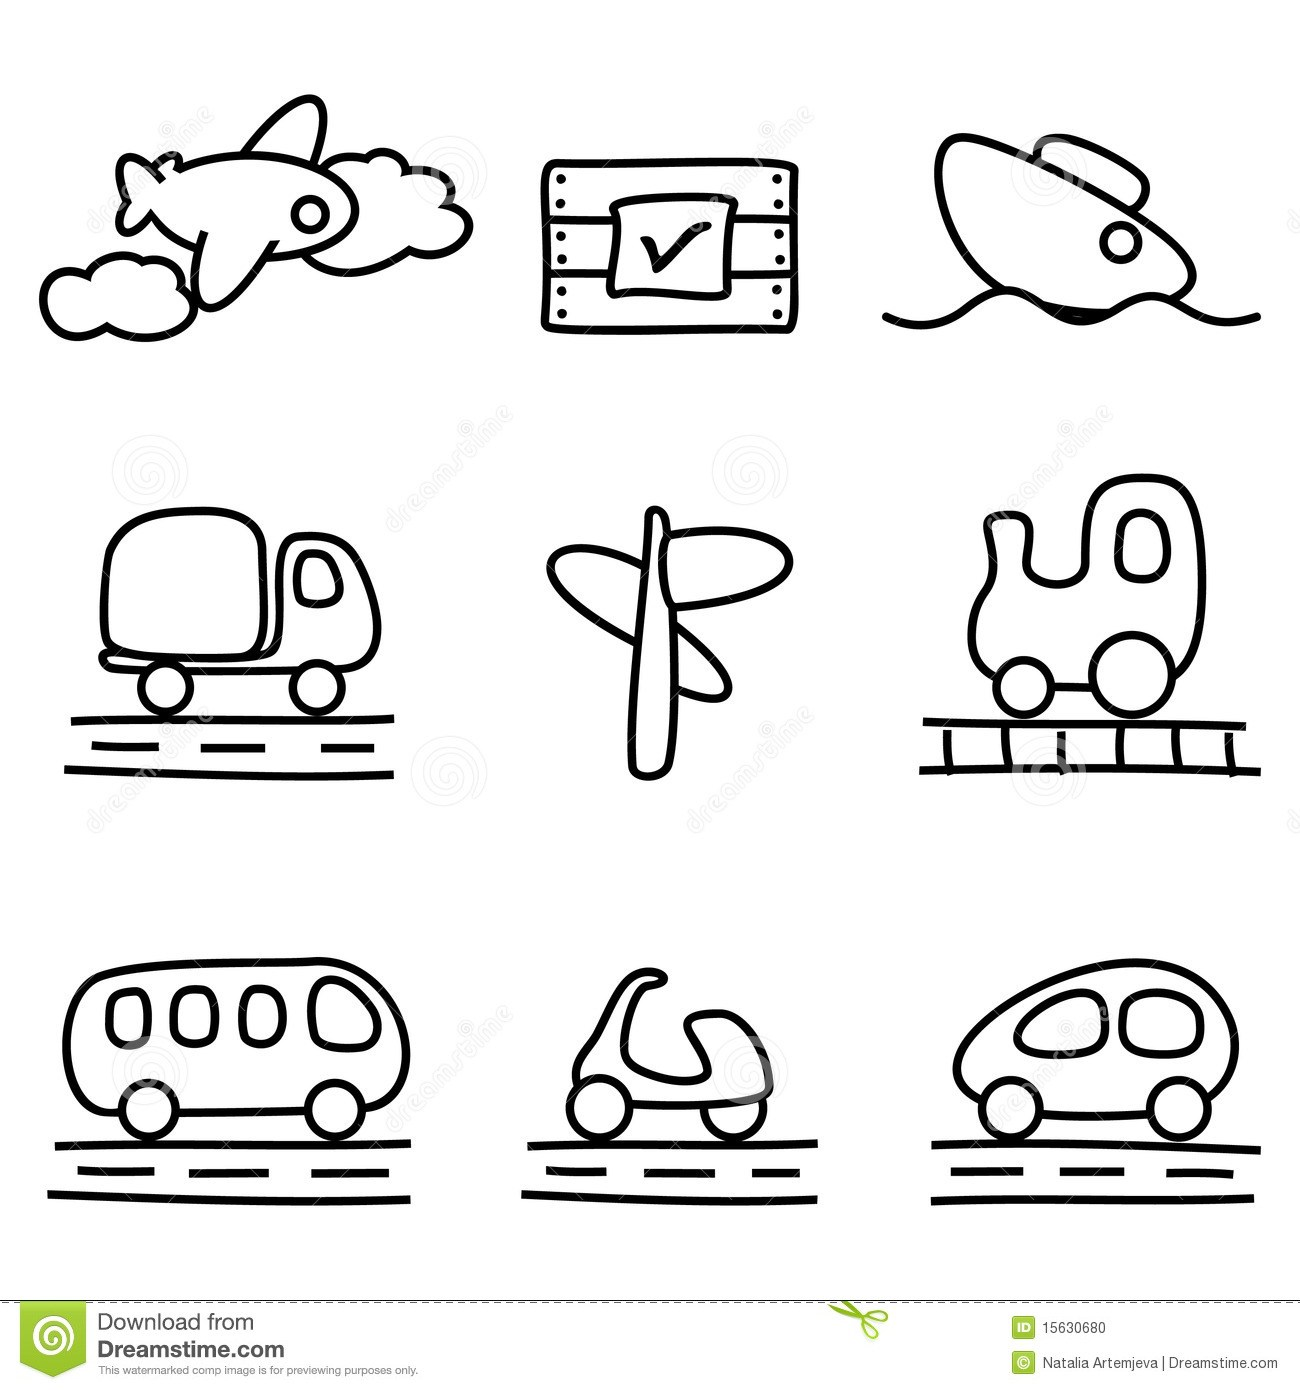 Transport clipart black and white svg library Transport clipart black and white 6 » Clipart Portal svg library